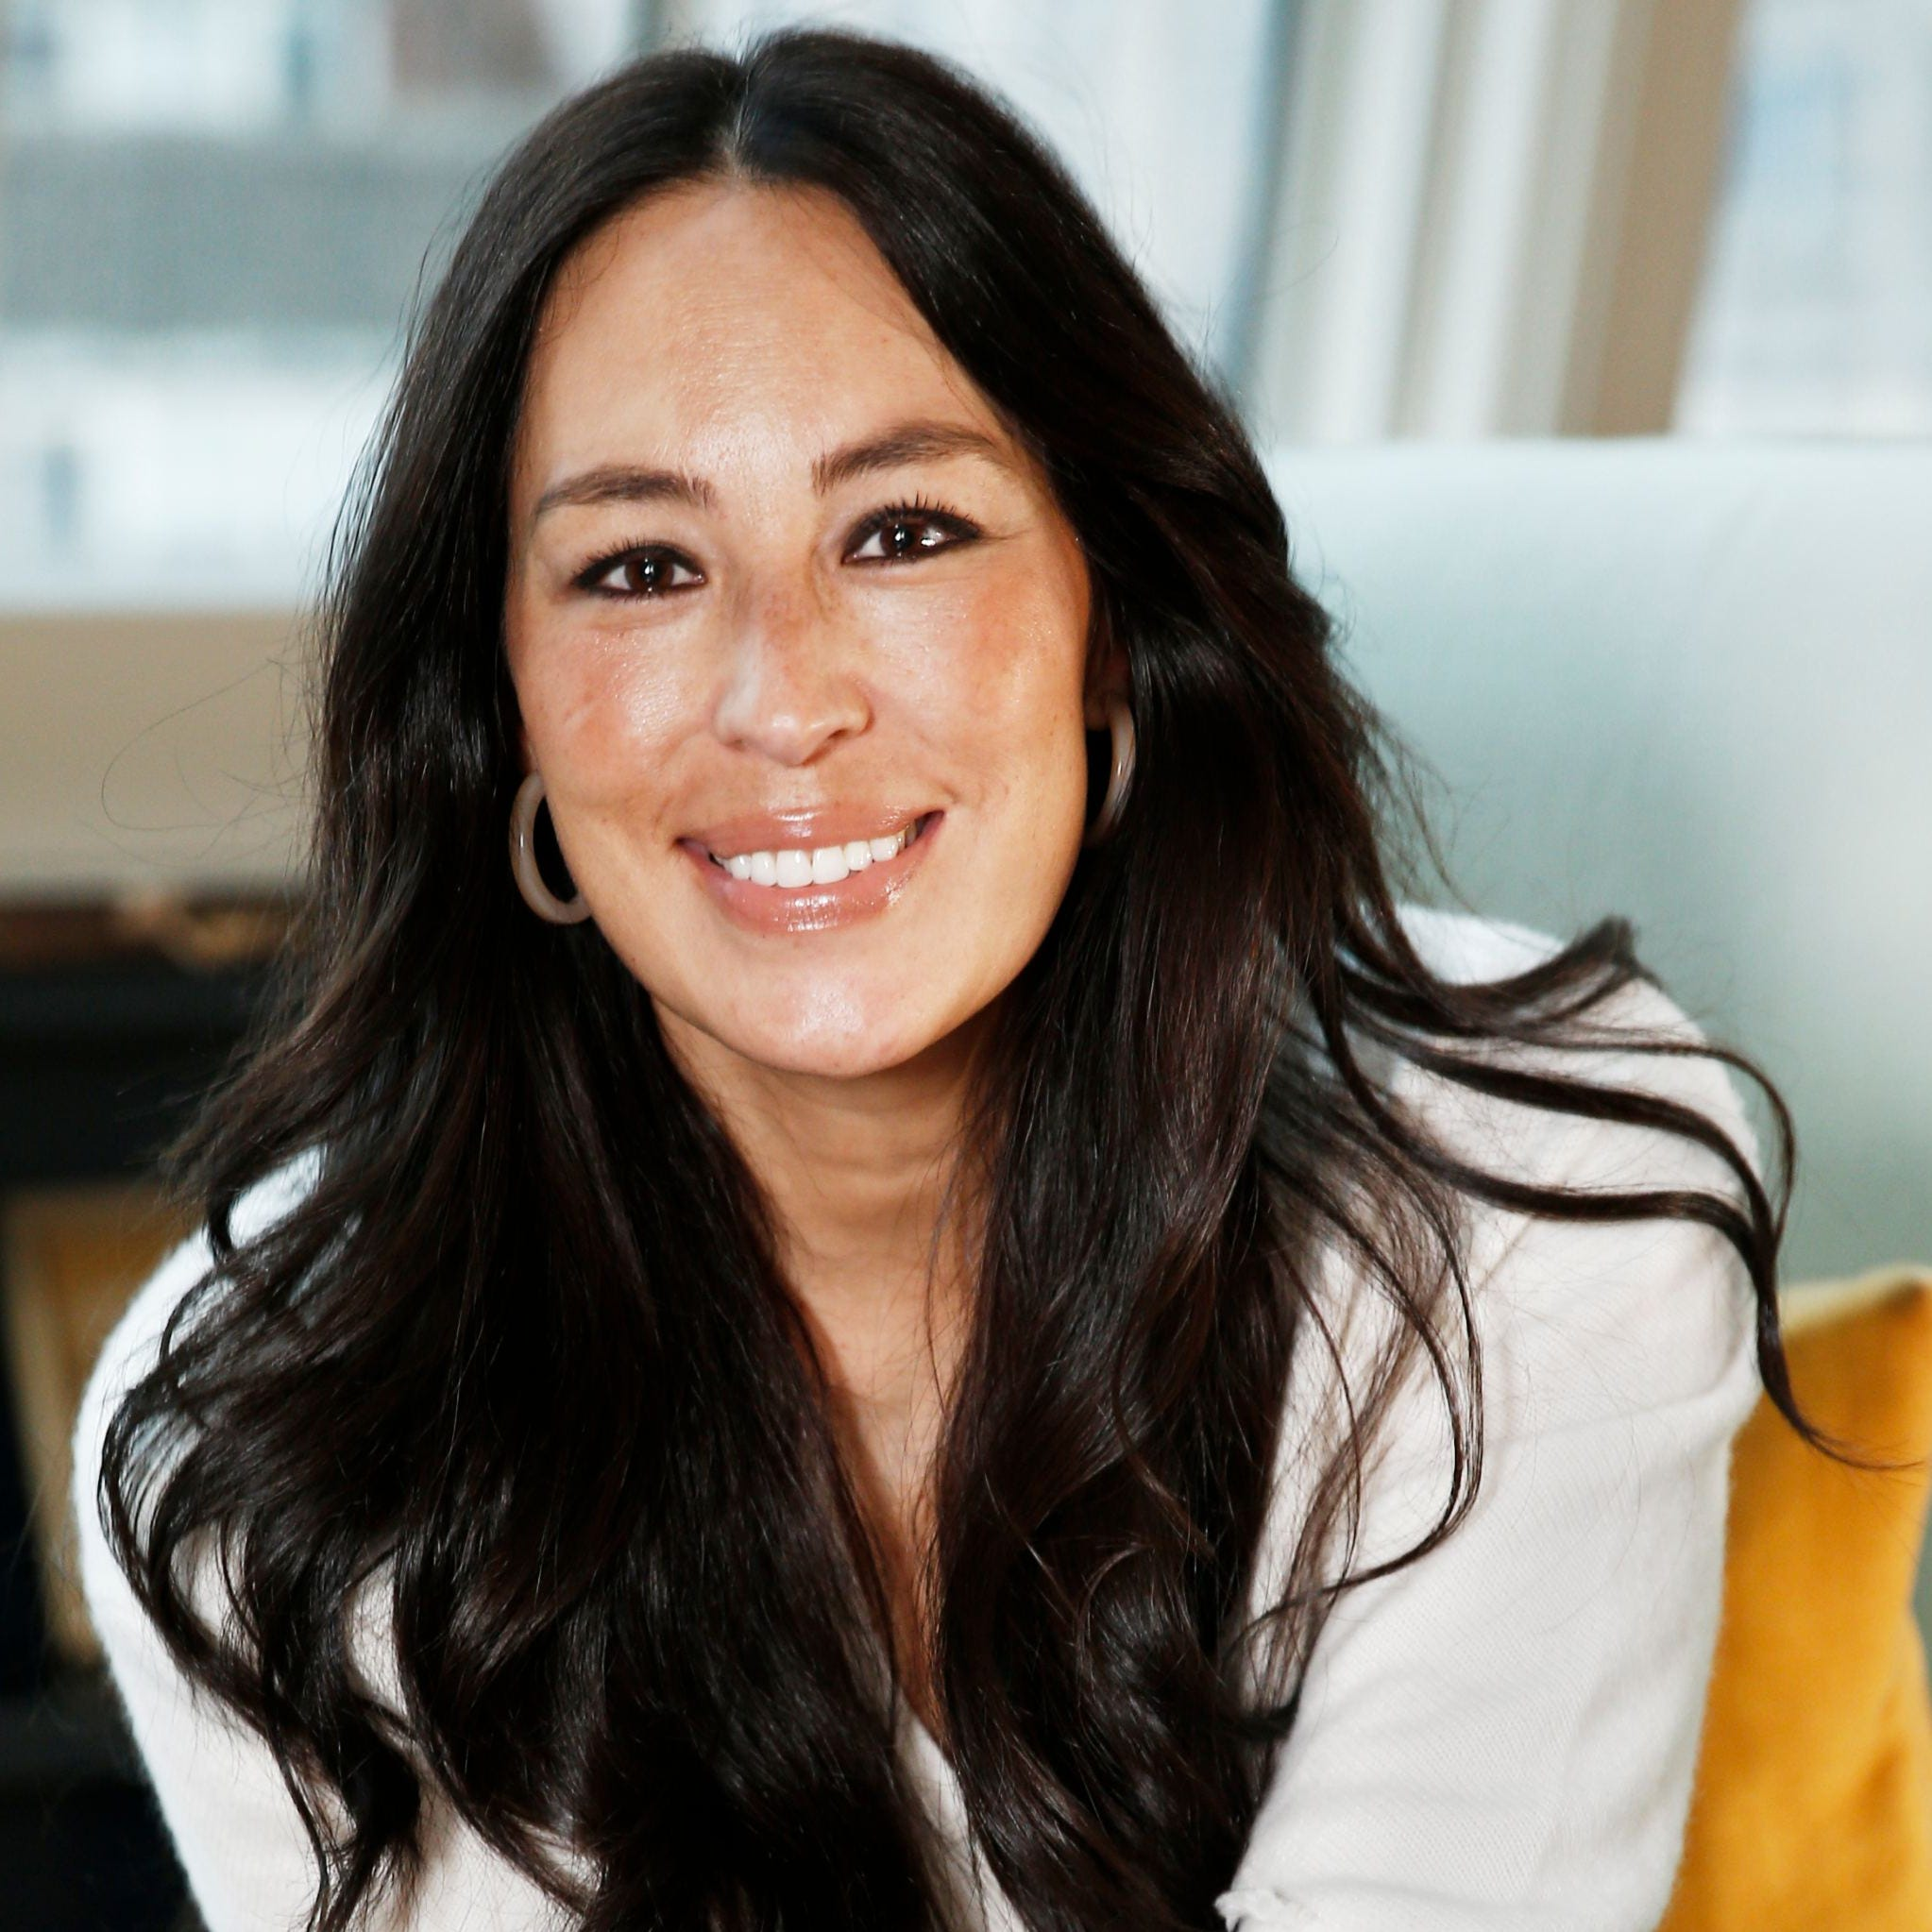 Joanna Gaines, lifestyle celeb and mother of give, wants to send a message of encouragement to parents.